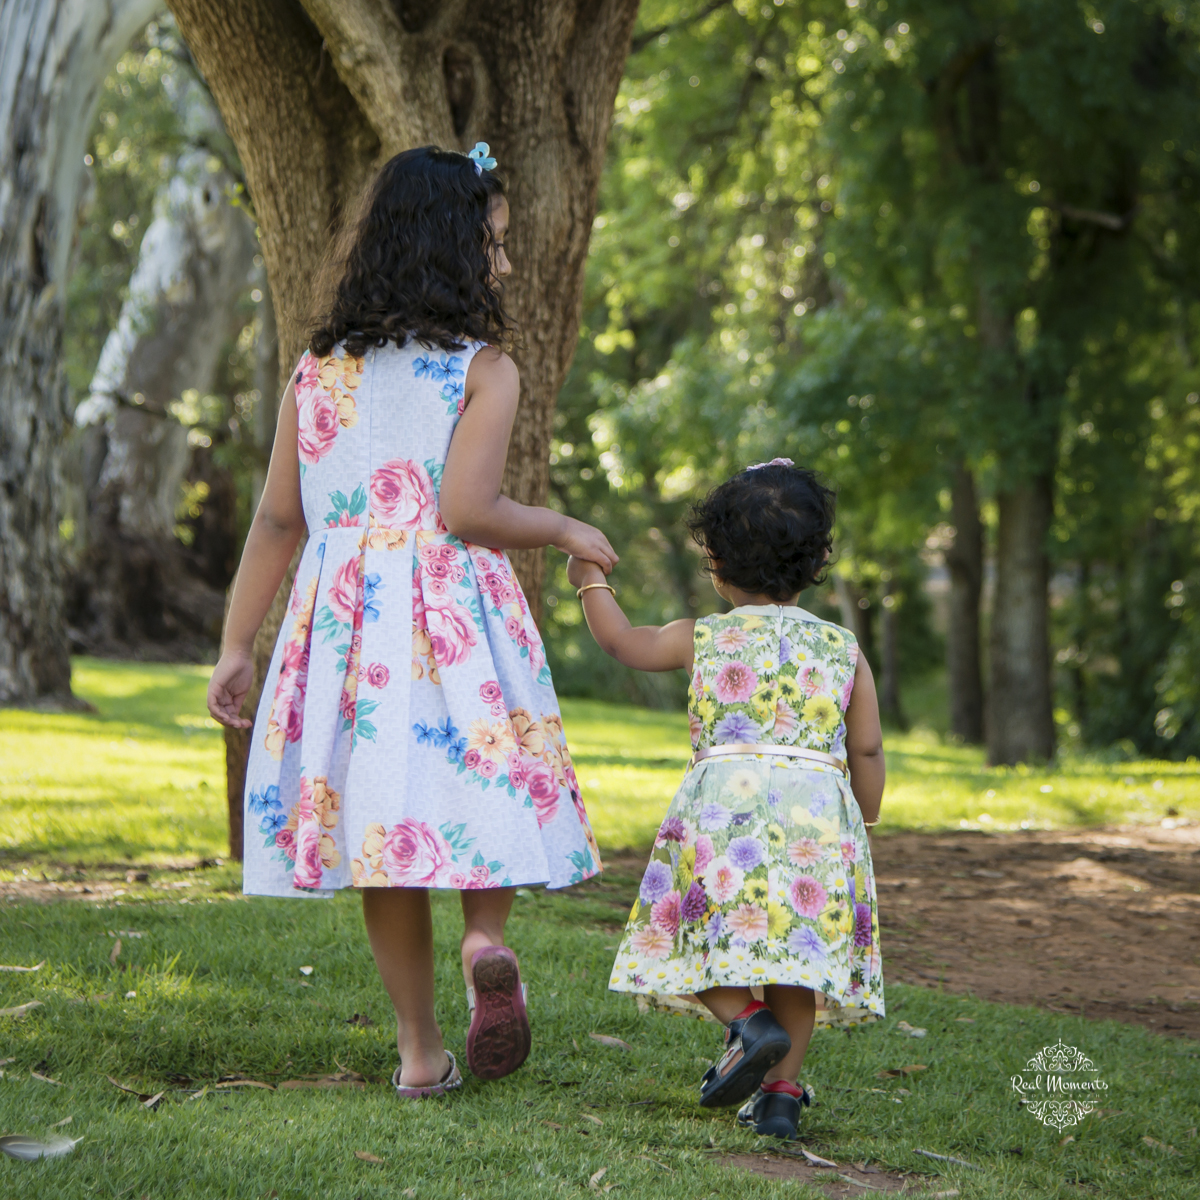 perfect for interior wall art - professional family photographer - photo of little girls walking